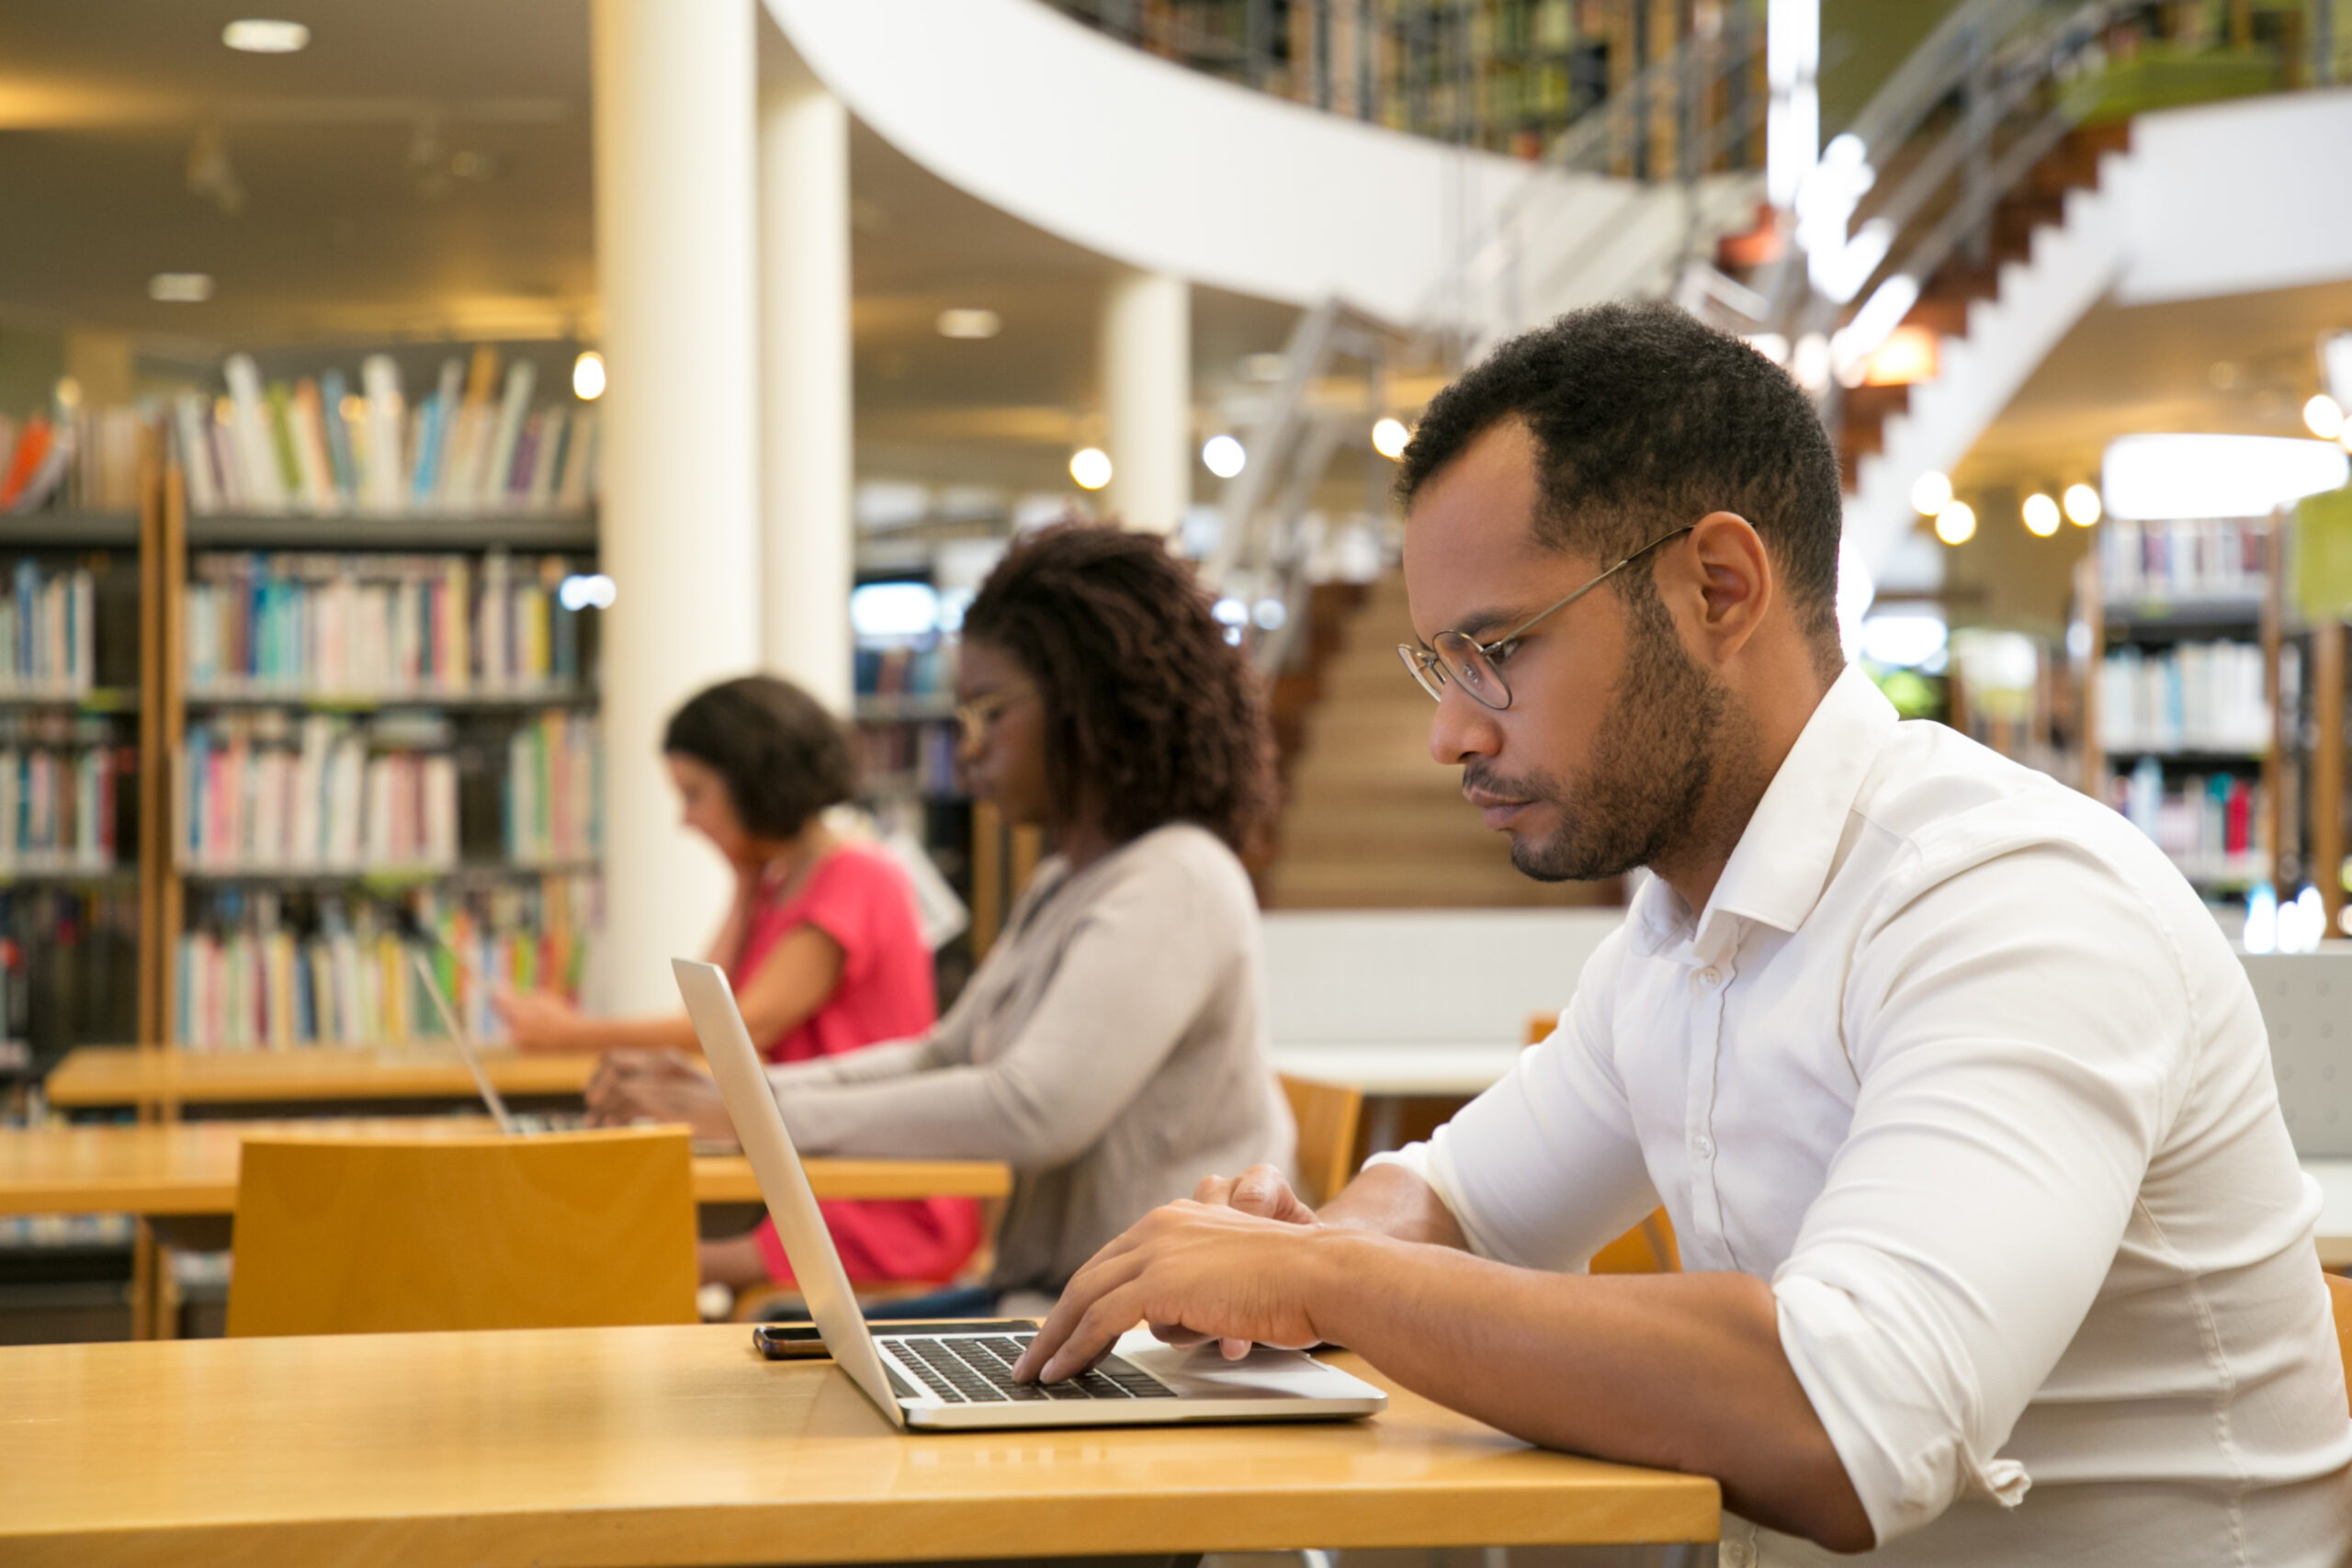 Mix raced trainees working on computer in public library. Serious people sitting at desks and using laptops. Knowledge concept